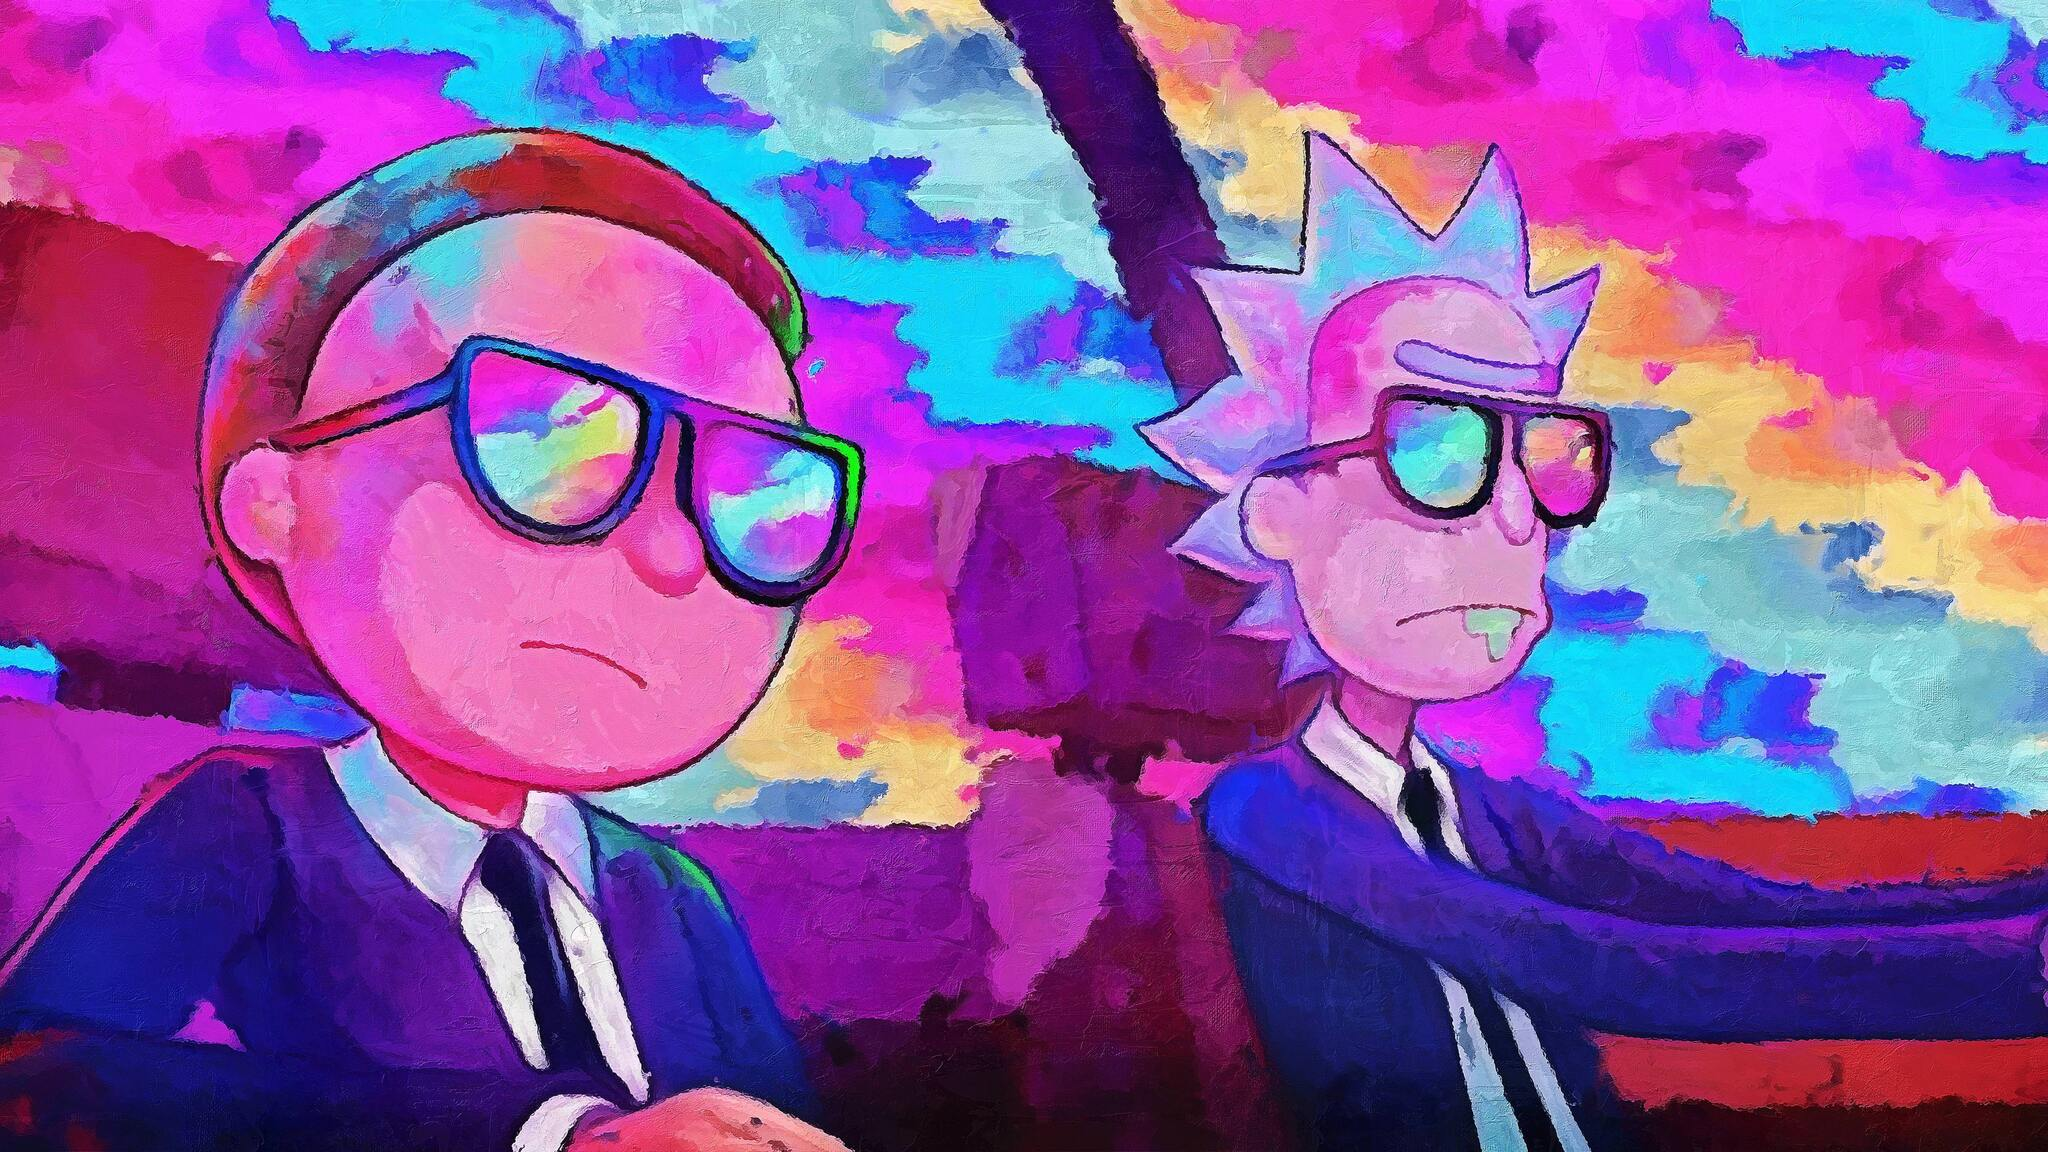 2048x1152 rick and morty 5k artwork 2048x1152 resolution - Evil morty wallpaper 4k ...